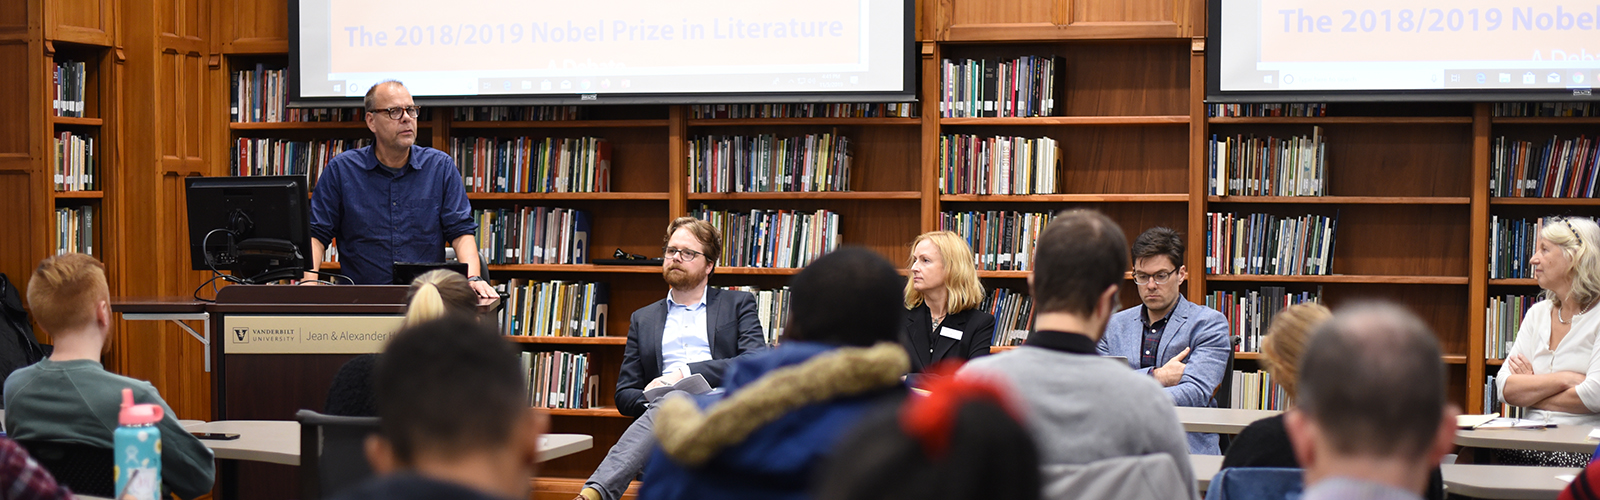 one faculty member stands at a lectern and four others sit at a long table in front of a book-lined room of seated students and faculty